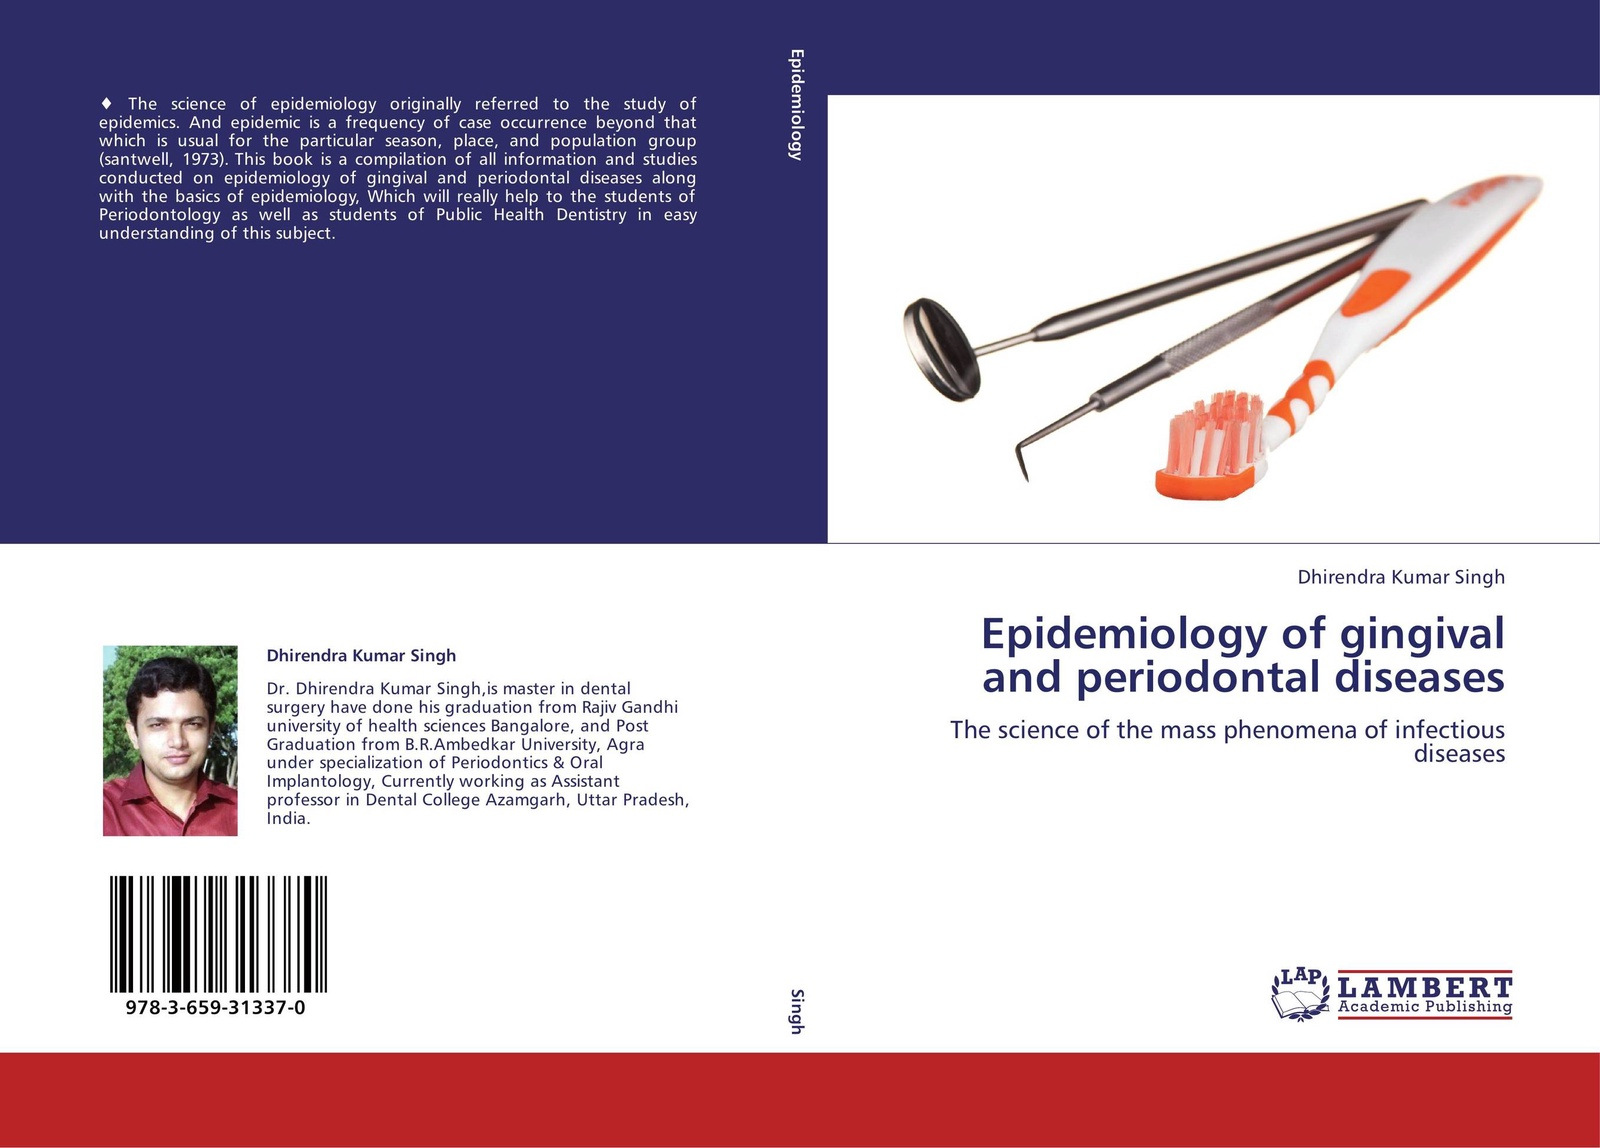 Dhirendra Kumar Singh Epidemiology of gingival and periodontal diseases epidemiology of lower limb fractures and ambulatory rehabilitation